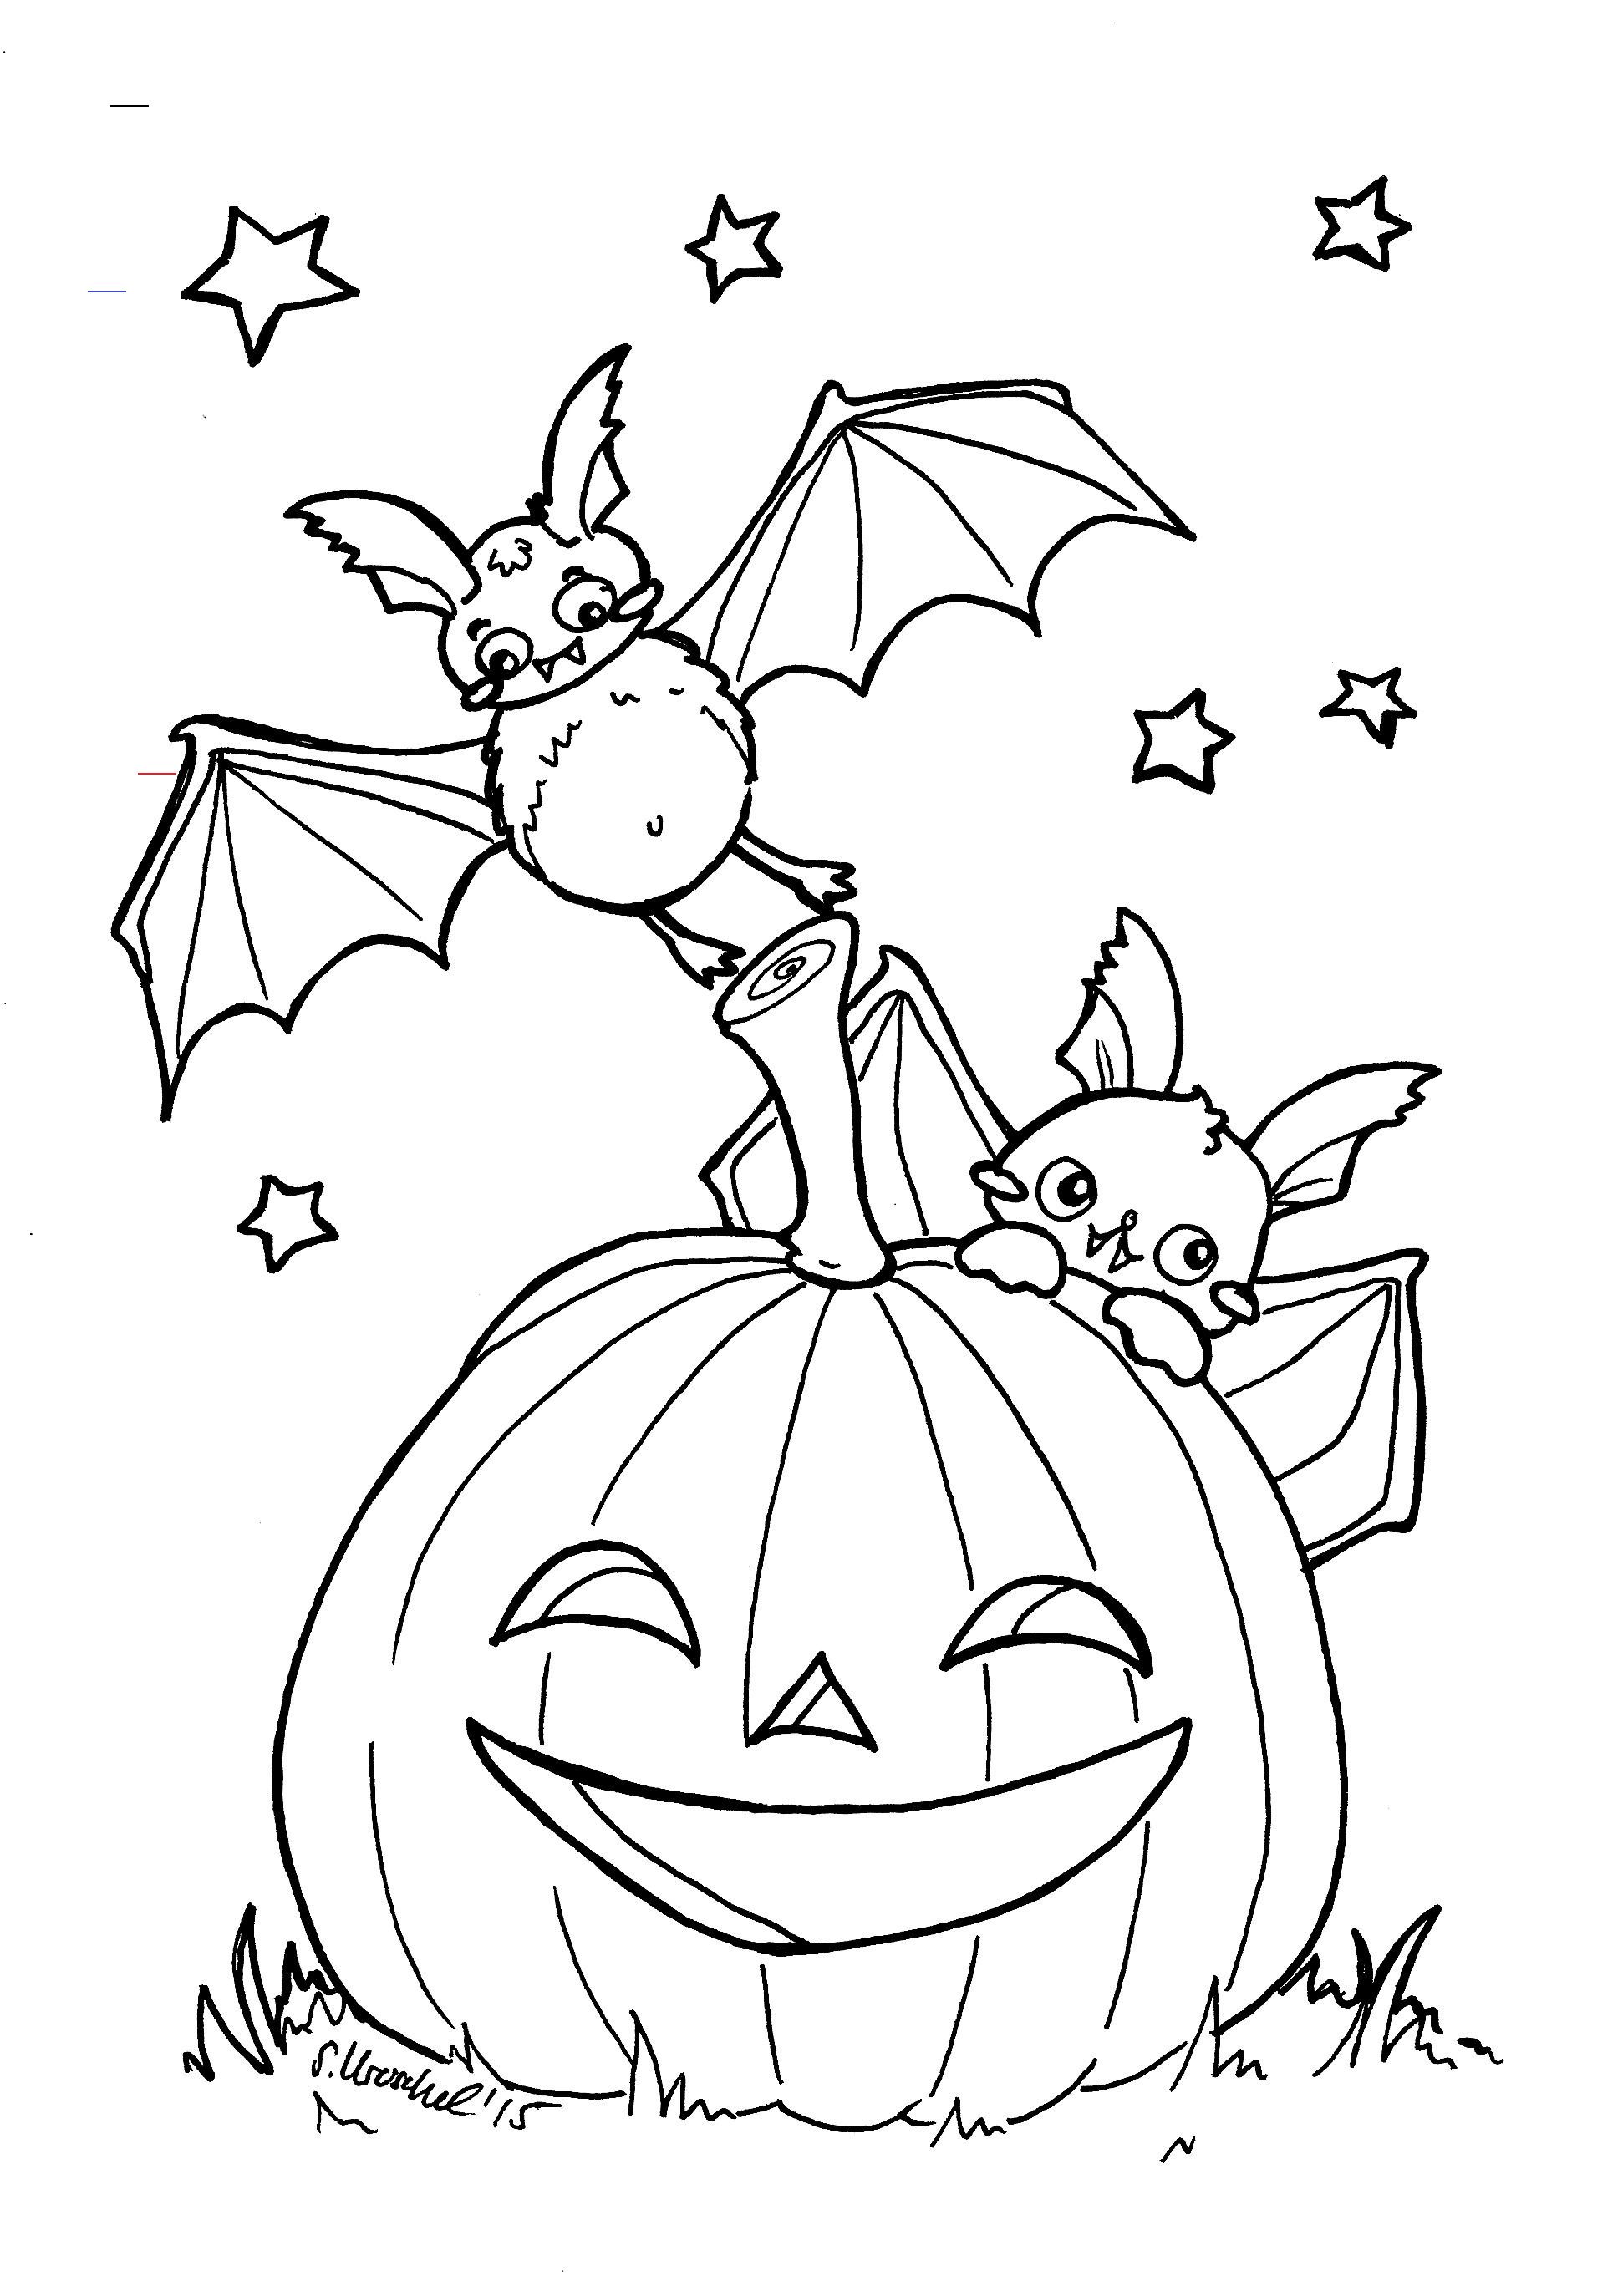 Halloweencoloringpages Monster Coloring Pages Halloween Coloring Book Coloring Pages